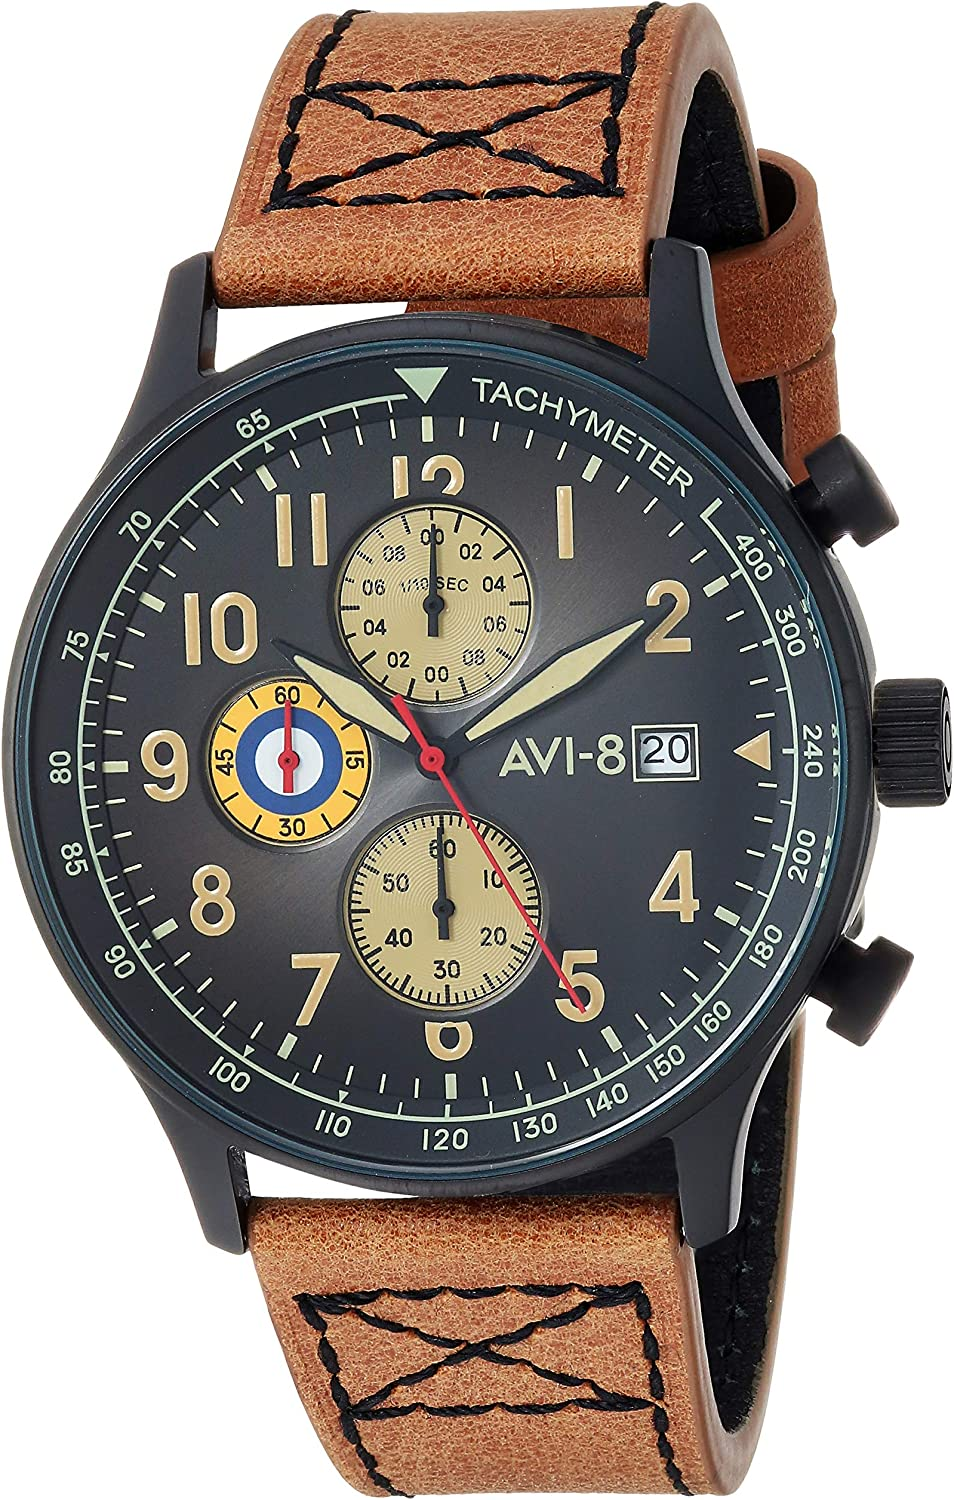 AVI-8 Men's Hawker Hurricane Analog Display Japanese Quartz Watch with Leather Band